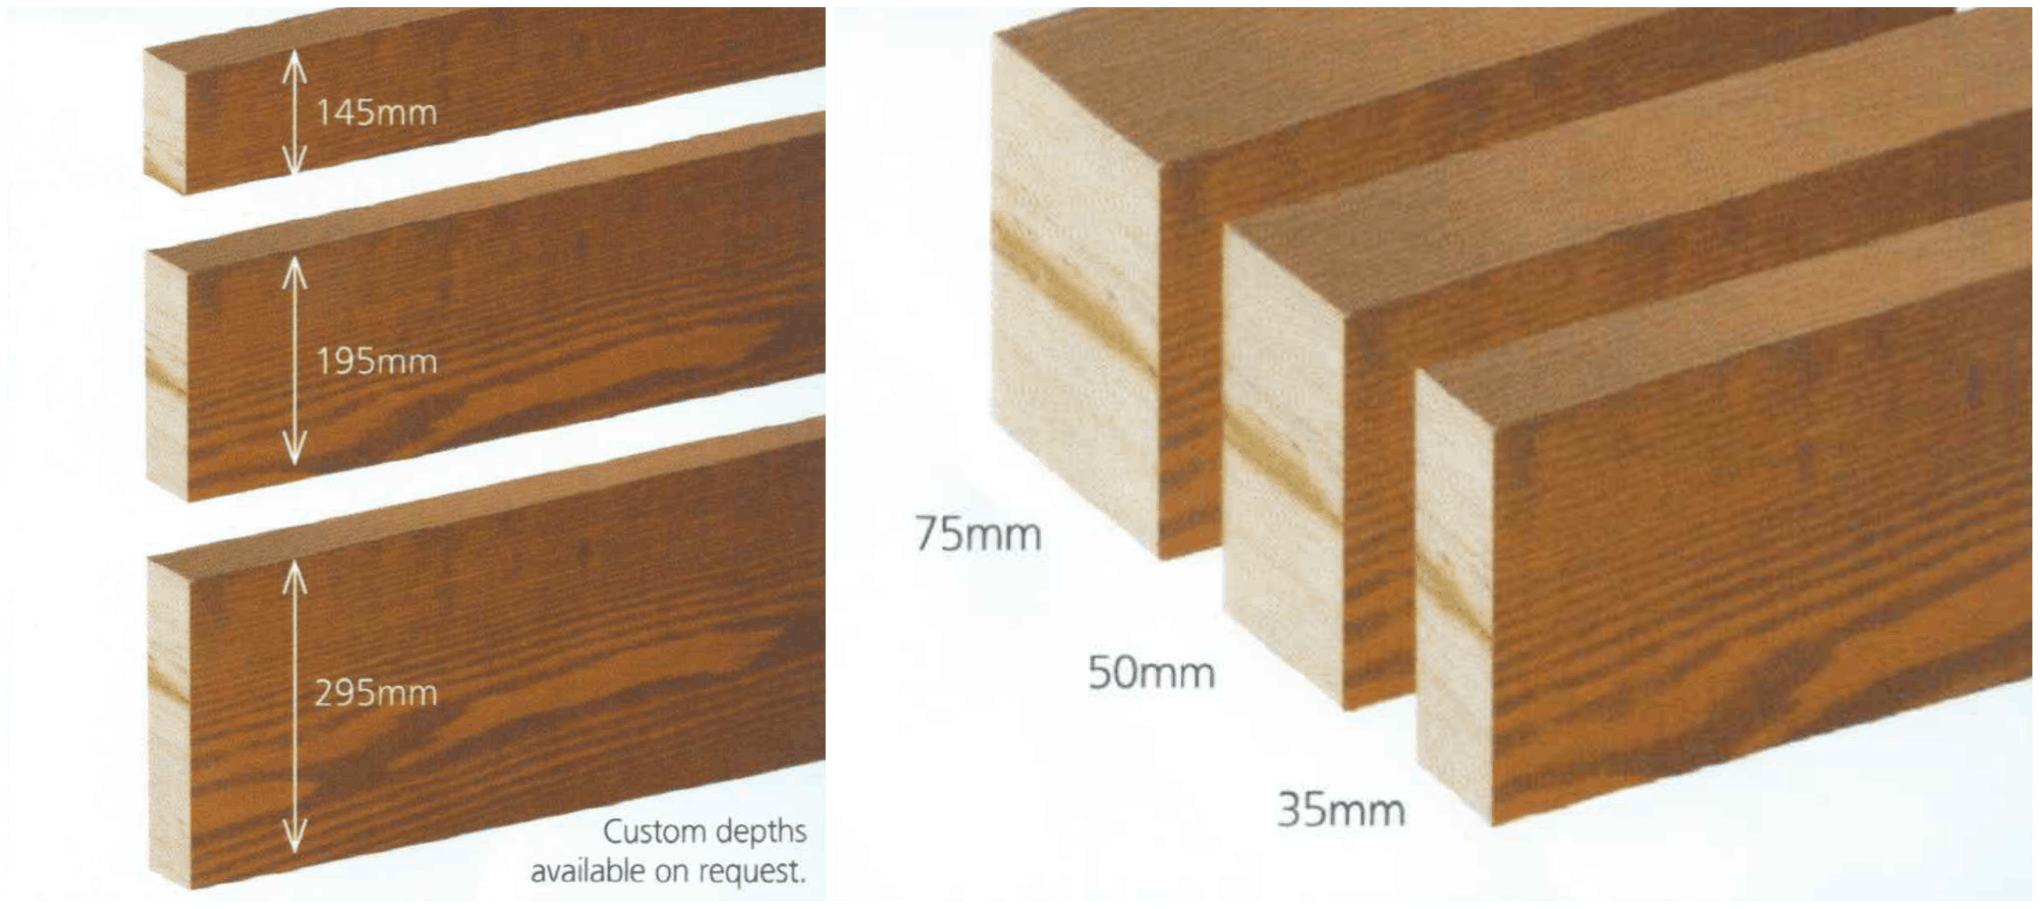 custom size plywood depths available on request